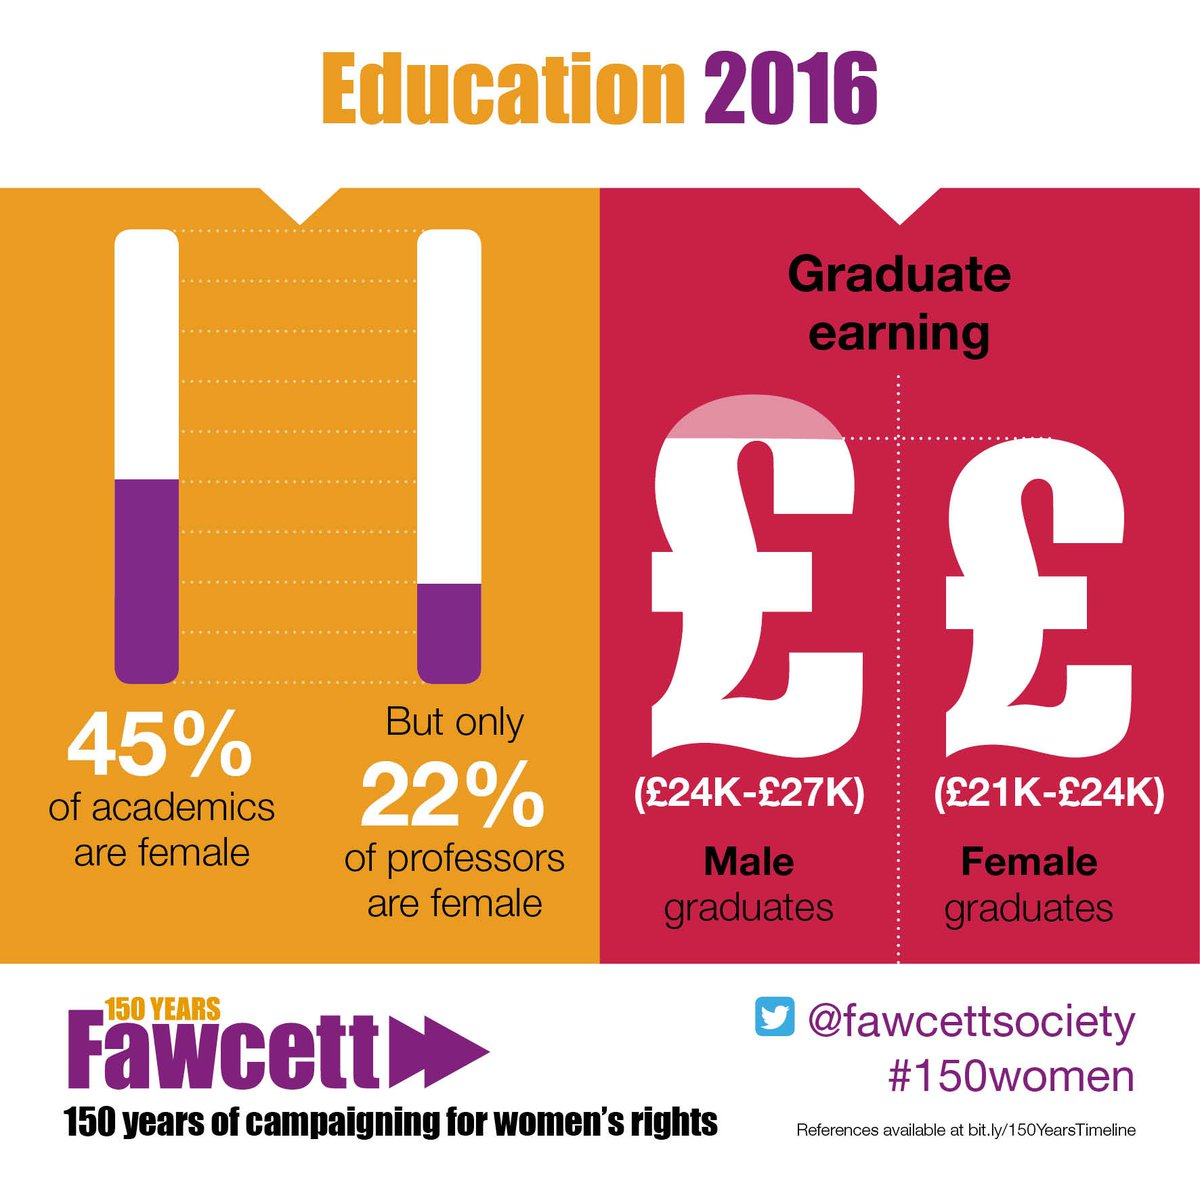 Did you know only 22% of professors are female? Yet 45% of academics are female. Doesn't quite add up... #IWD2016 https://t.co/6FiD01NEaP